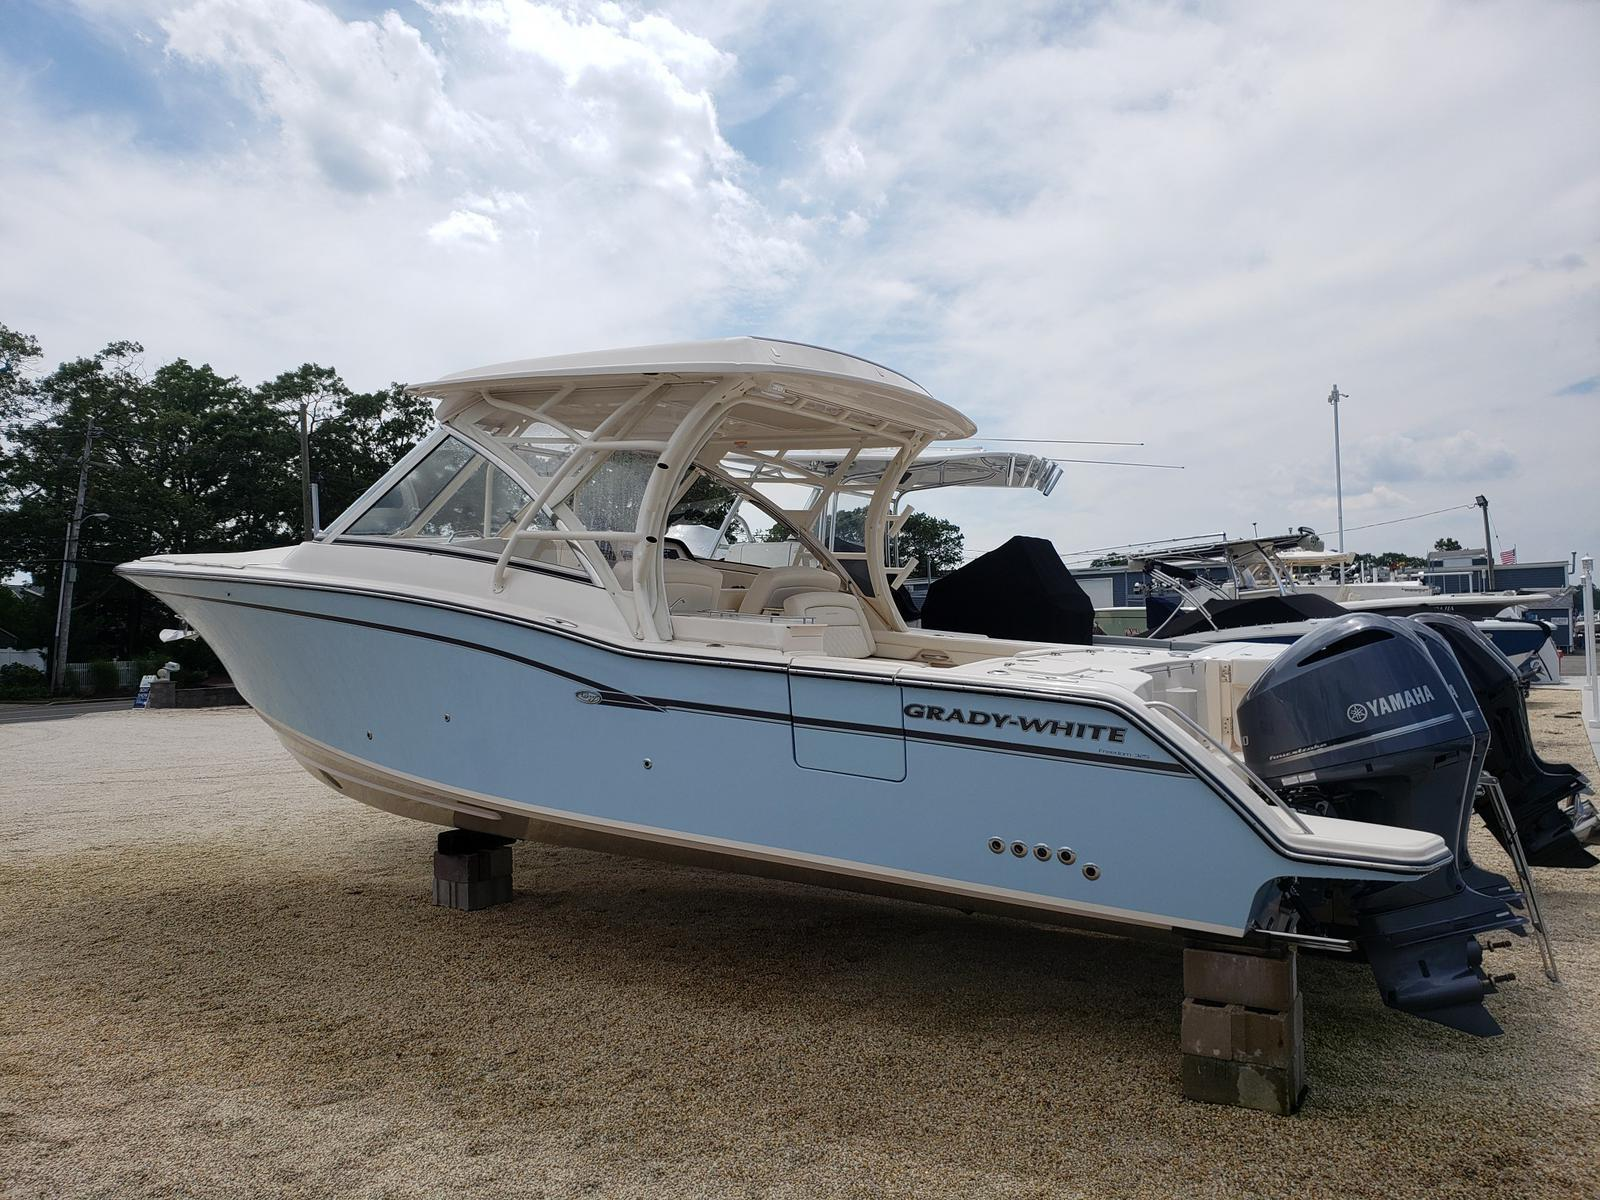 2019 Grady-White FREEDOM 325 for sale in Brick, NJ  Comstock